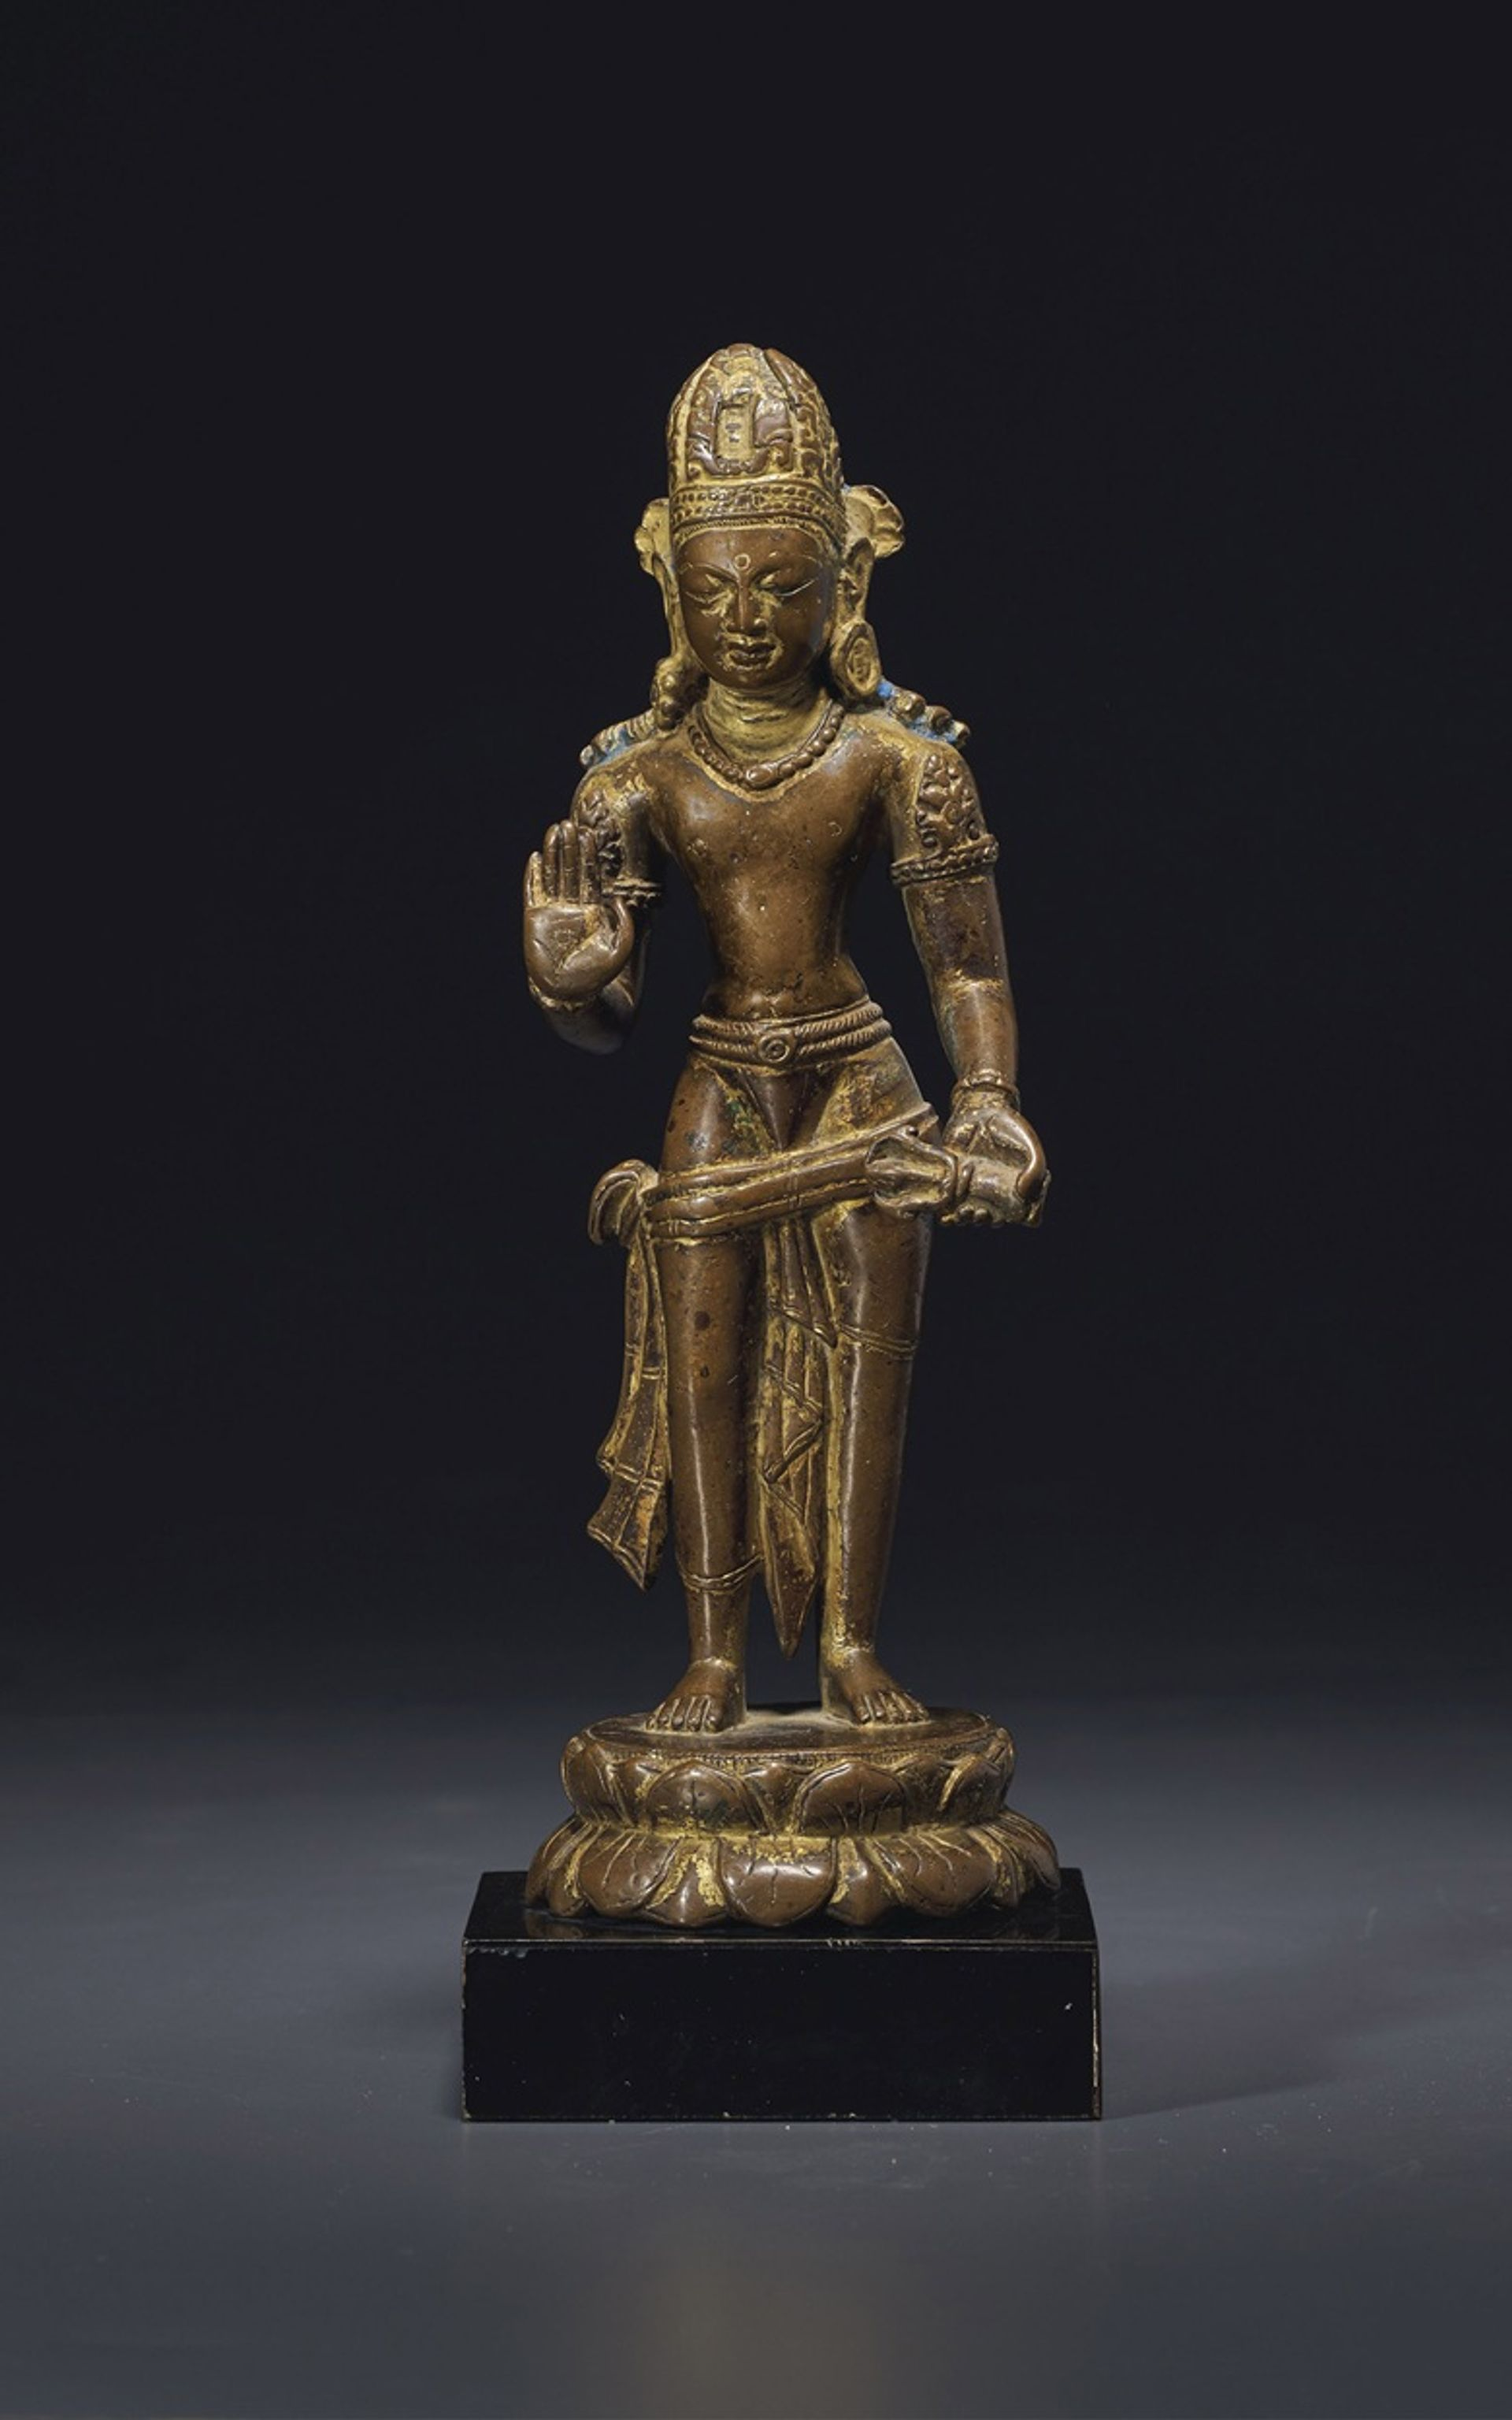 Christie's has moved most of its Asian art auction to June, including the sale of works from the collection of James and Marilynn Alsdorf, including this rare gilt-bronze figure of Vajrapani, from Nepal, Licchavi Period, 9th-10th century (est: $60,000-$80,000)